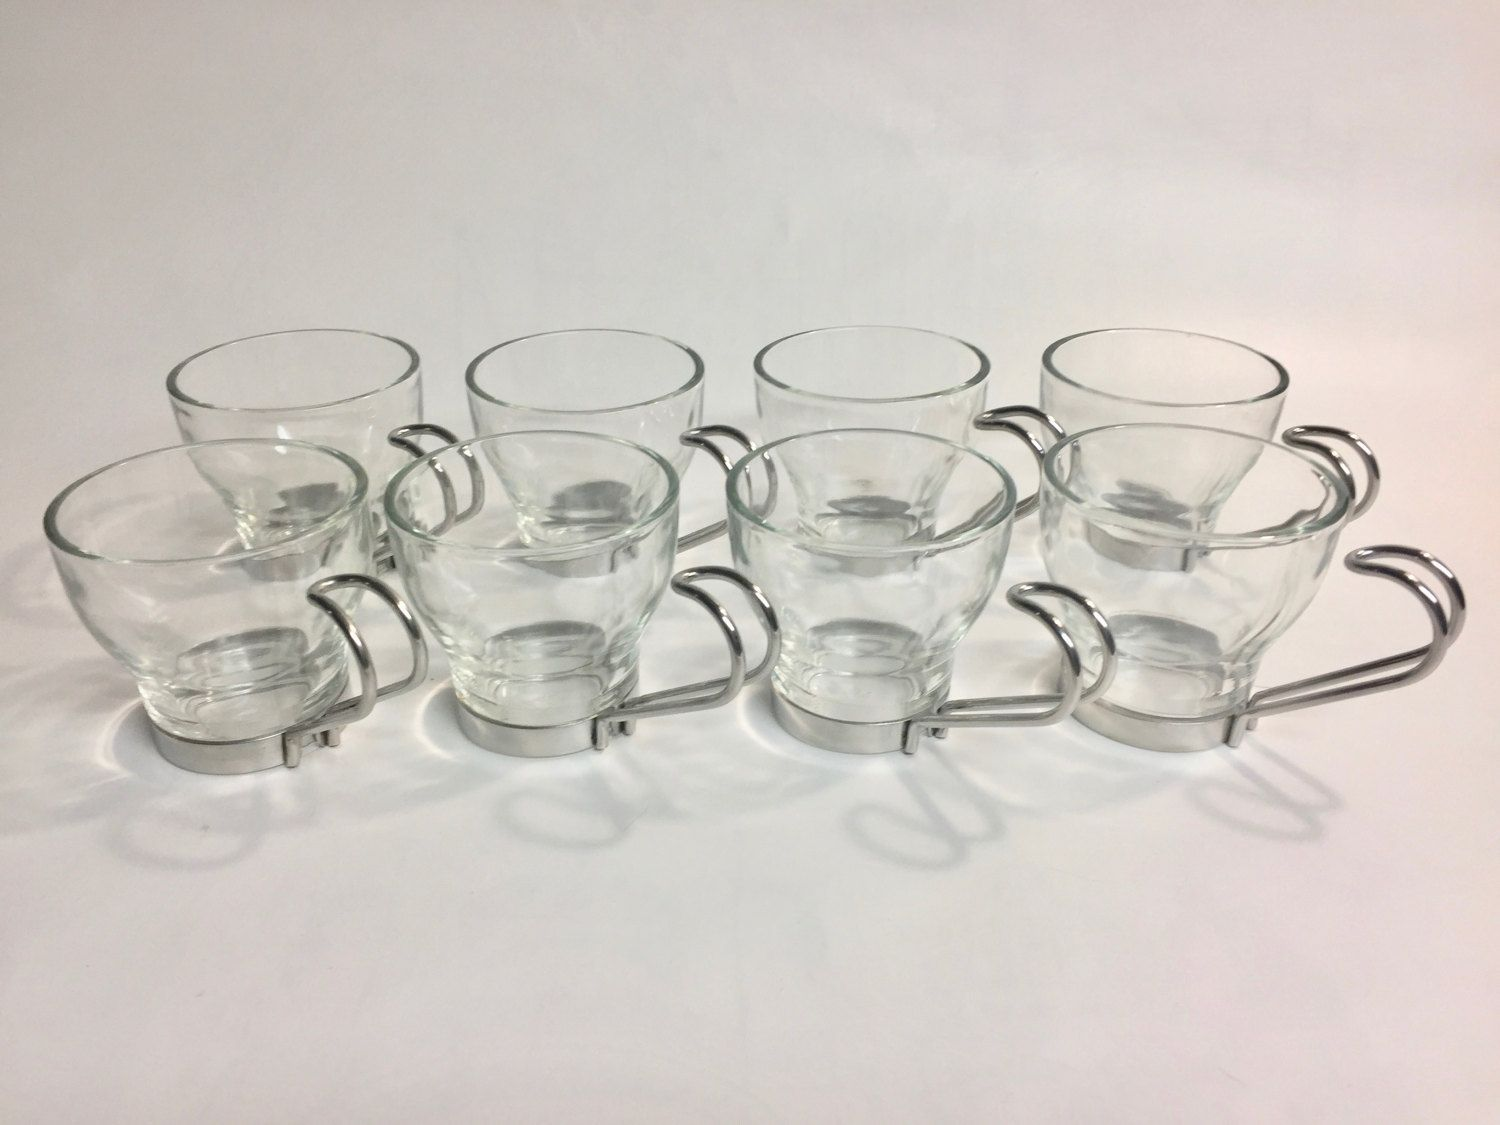 Mid Century Modern Vintage Glass Cup Set 8 Espresso With Silver Metal Handle Retro Glasses Mid Century Modern Glass B Glass Cup Set Glass Cup Retro Glasses